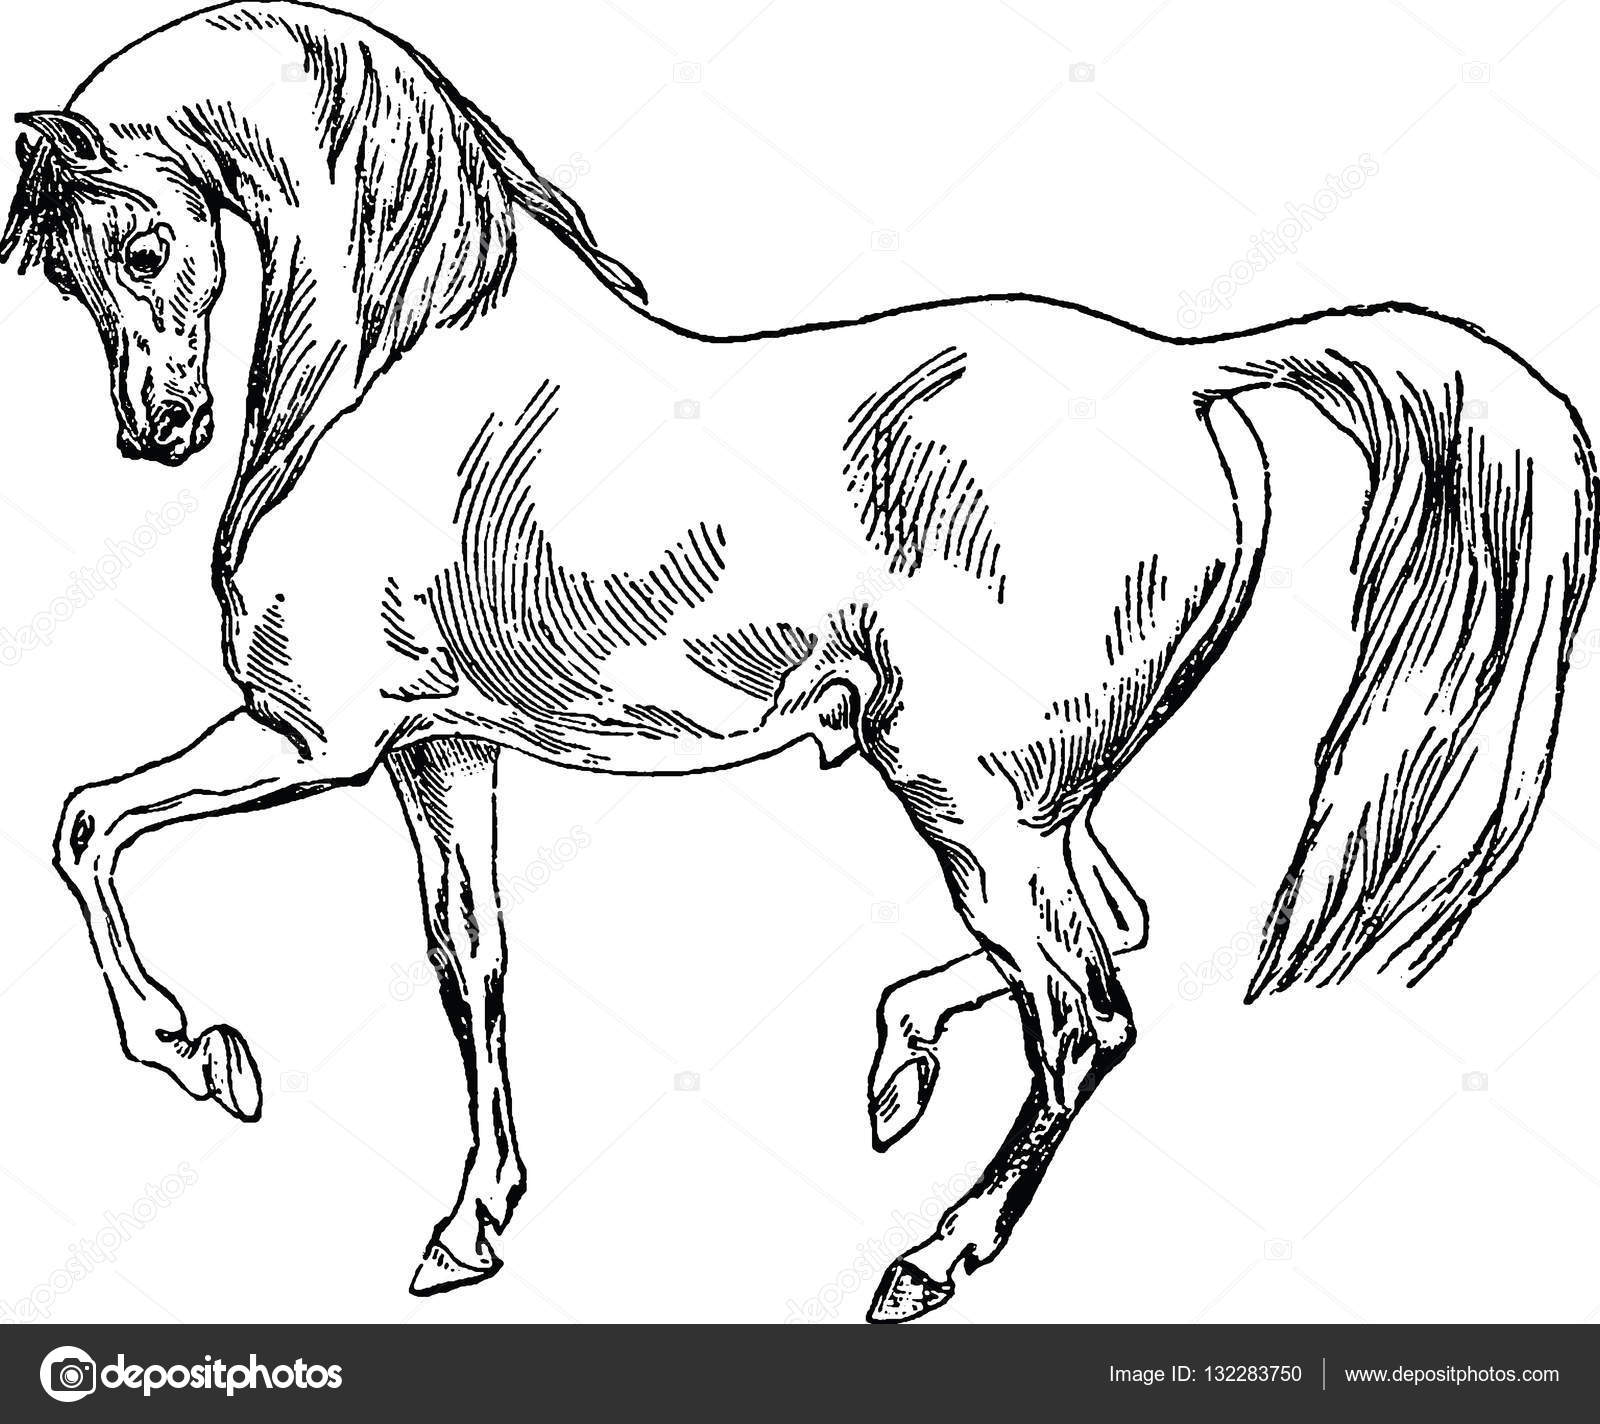 Vintage Illustration Horse Stock Photo C Unorobus Gmail Com 132283750